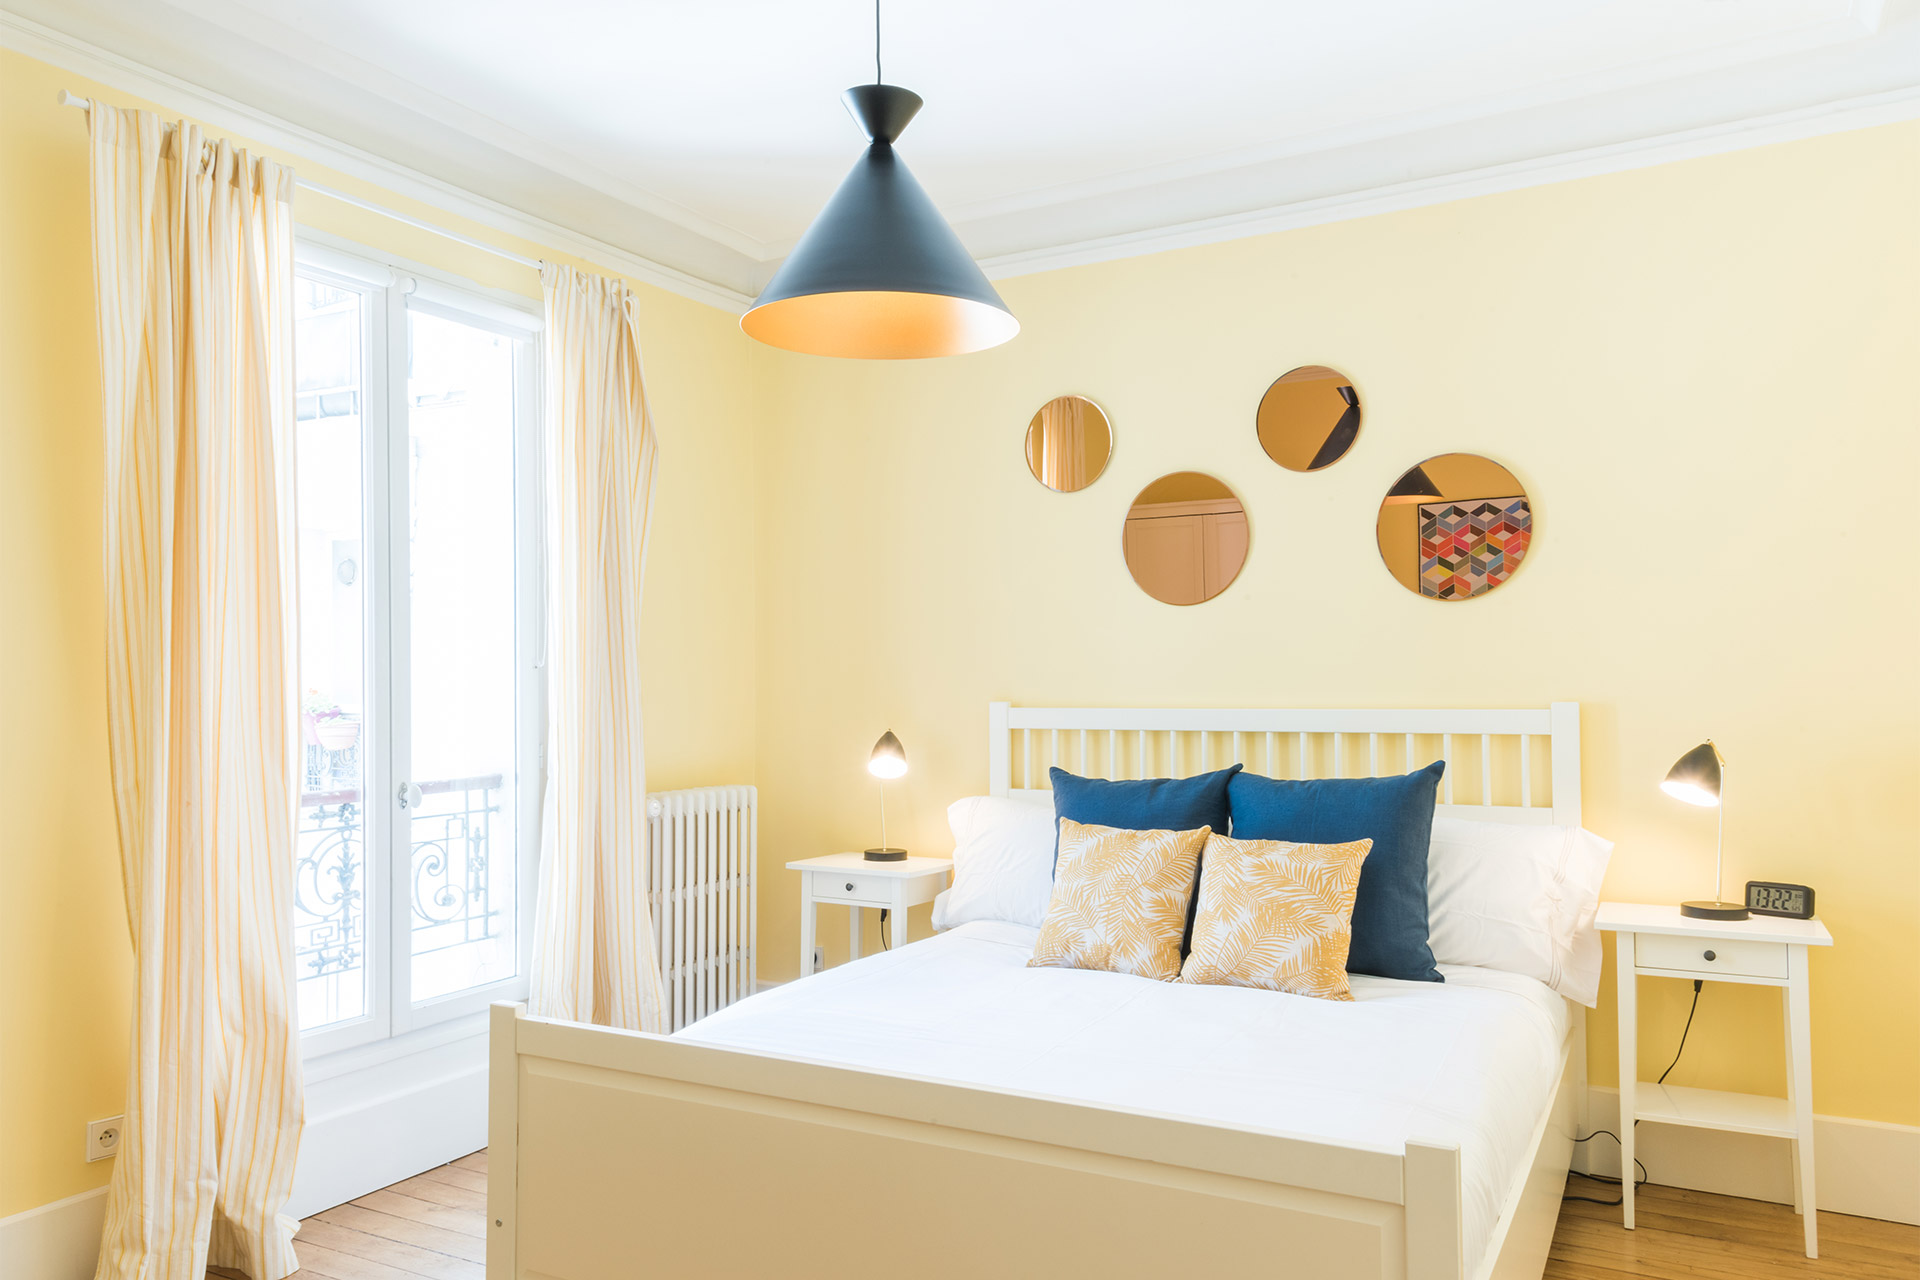 Bedroom 2 with a comfortable queen size bed in the Mondeuse vacation rental offered by Paris Perfect